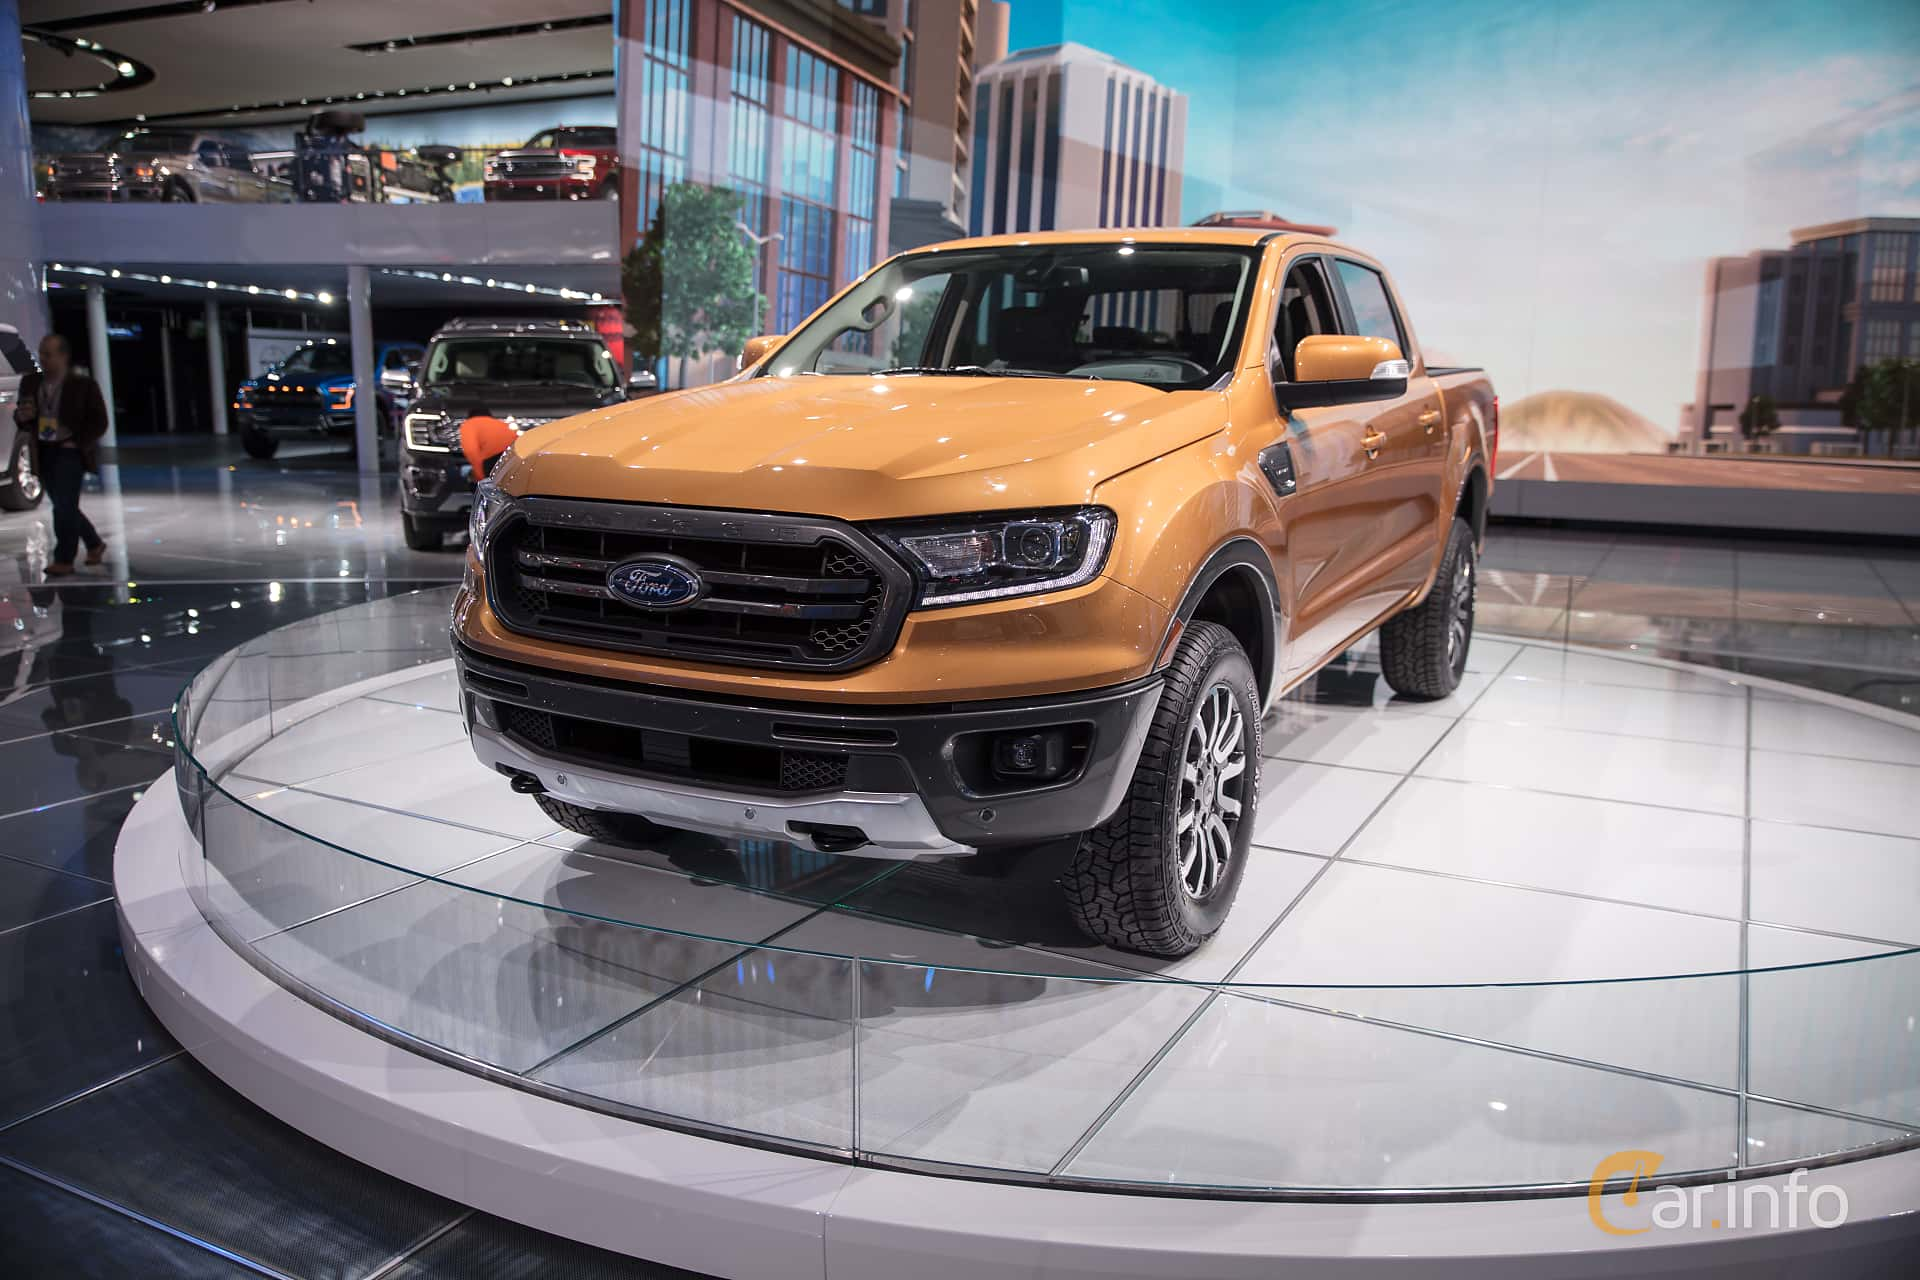 Front/Side  of Ford Ranger SuperCrew 2.3 EcoBoost 4x4 Automatic, 274ps, 2019 at North American International Auto Show 2018